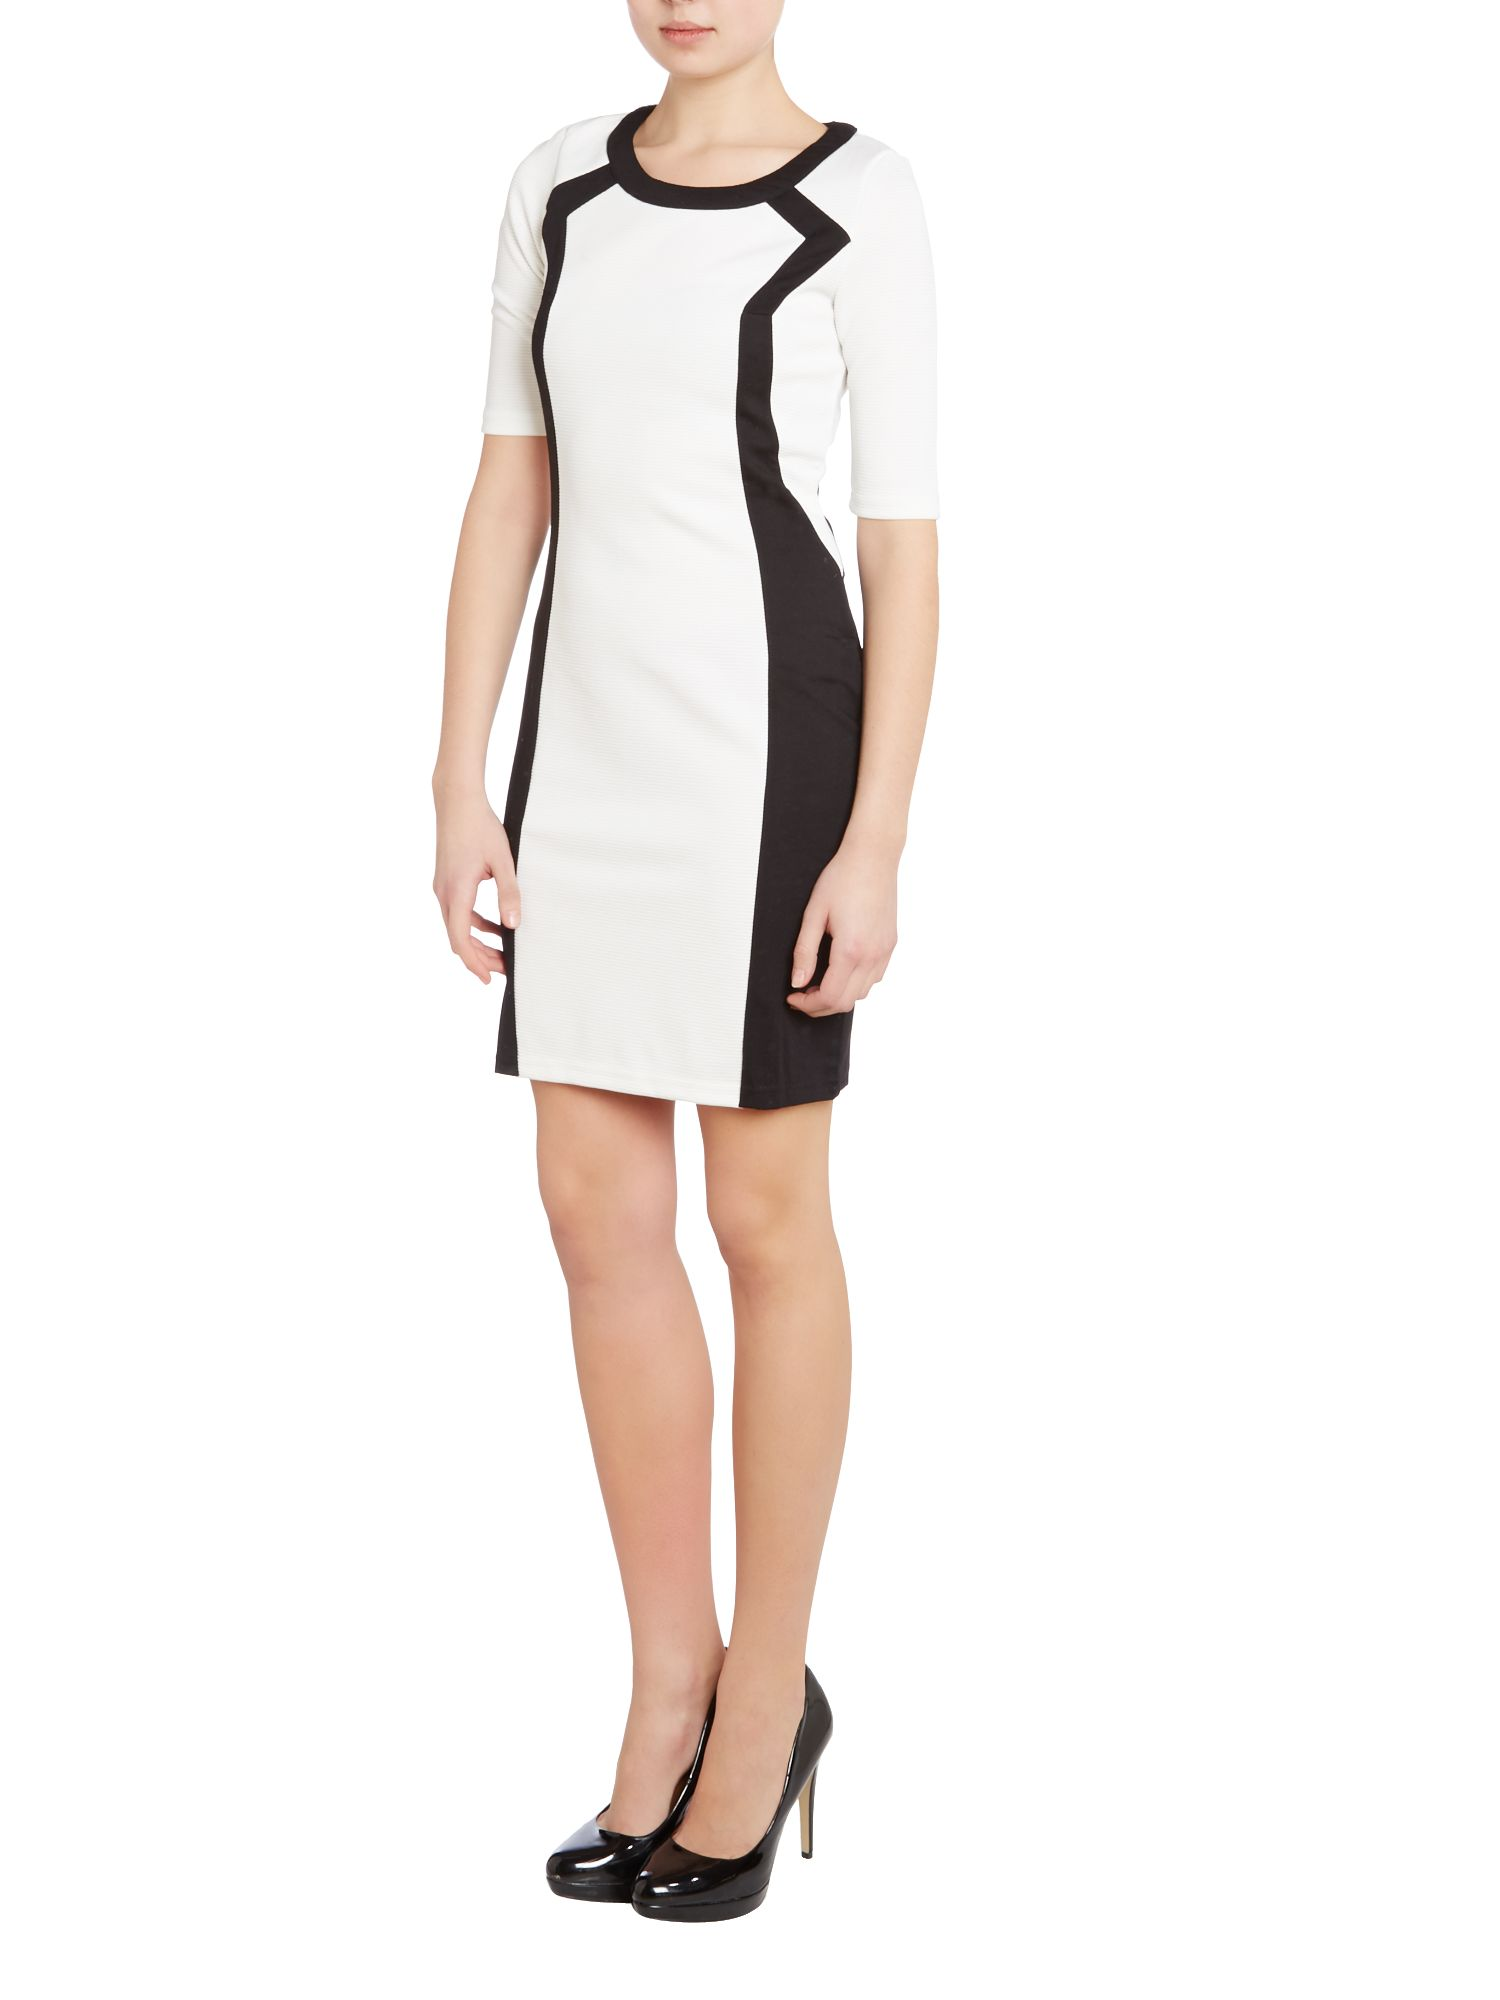 3/4 Sleeve contrast bodycon dress